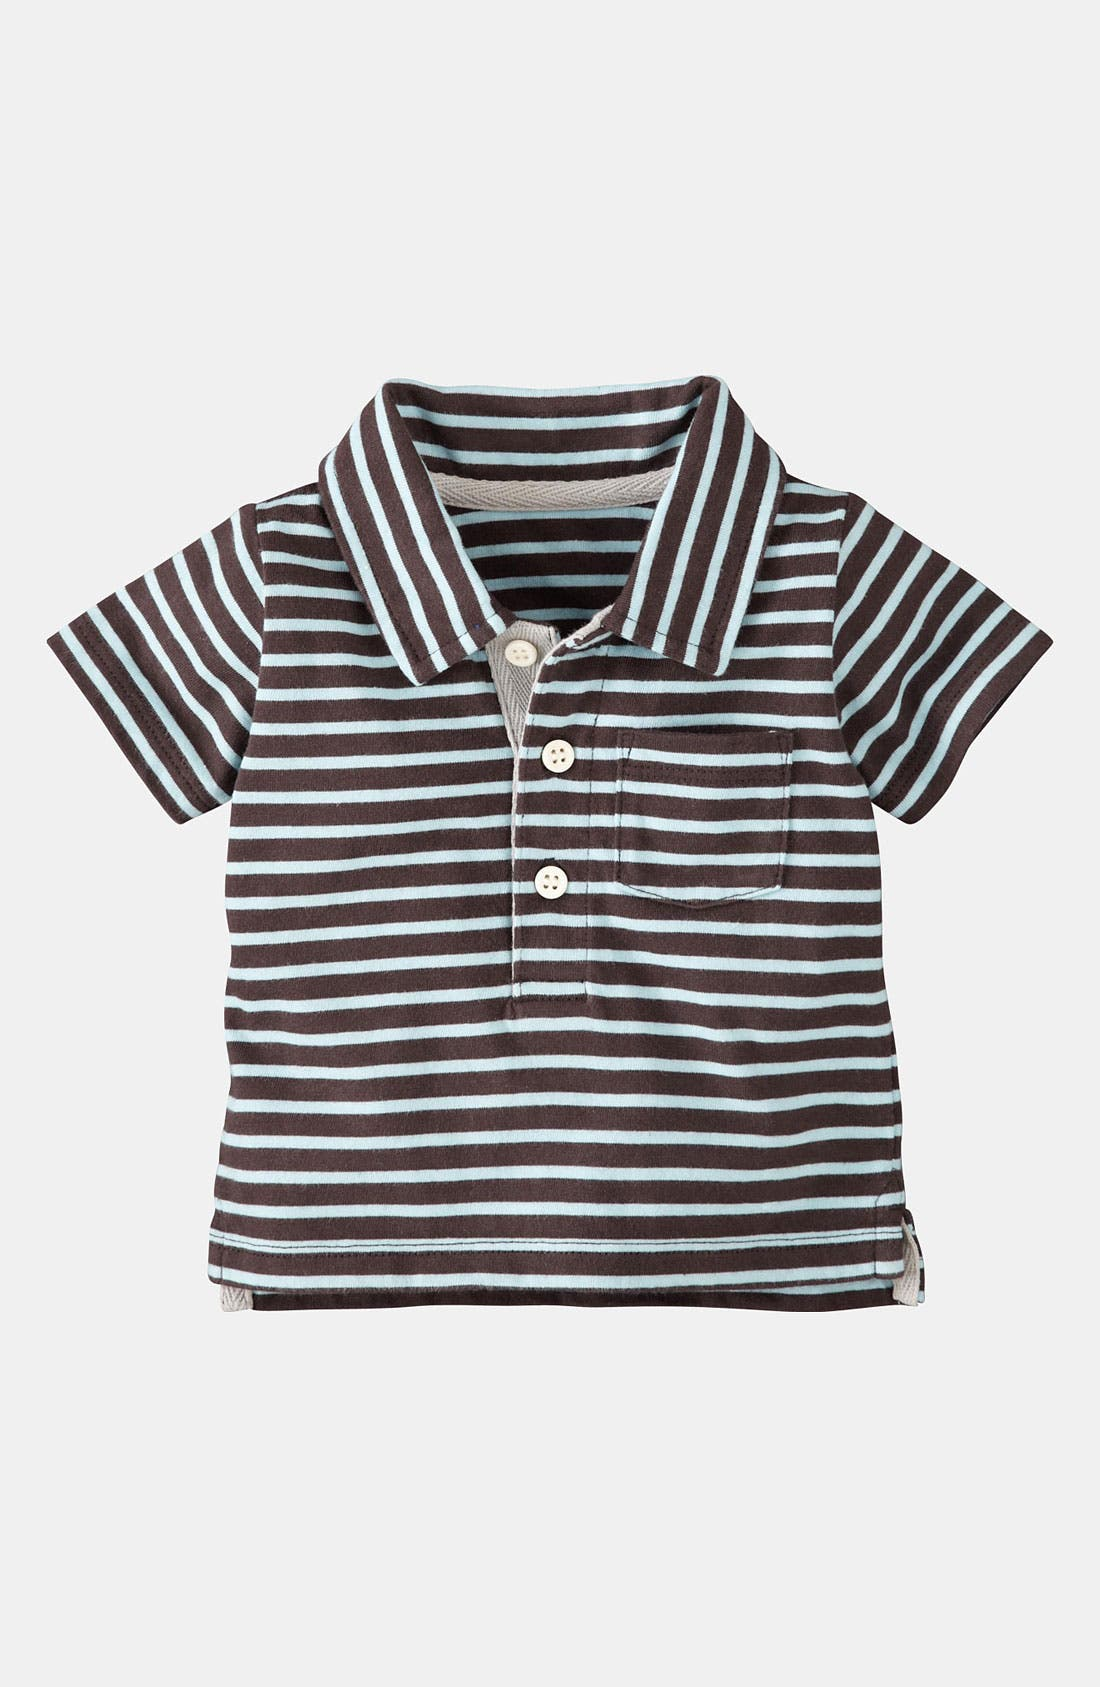 Alternate Image 1 Selected - Mini Boden 'Baby' Polo (Infant)